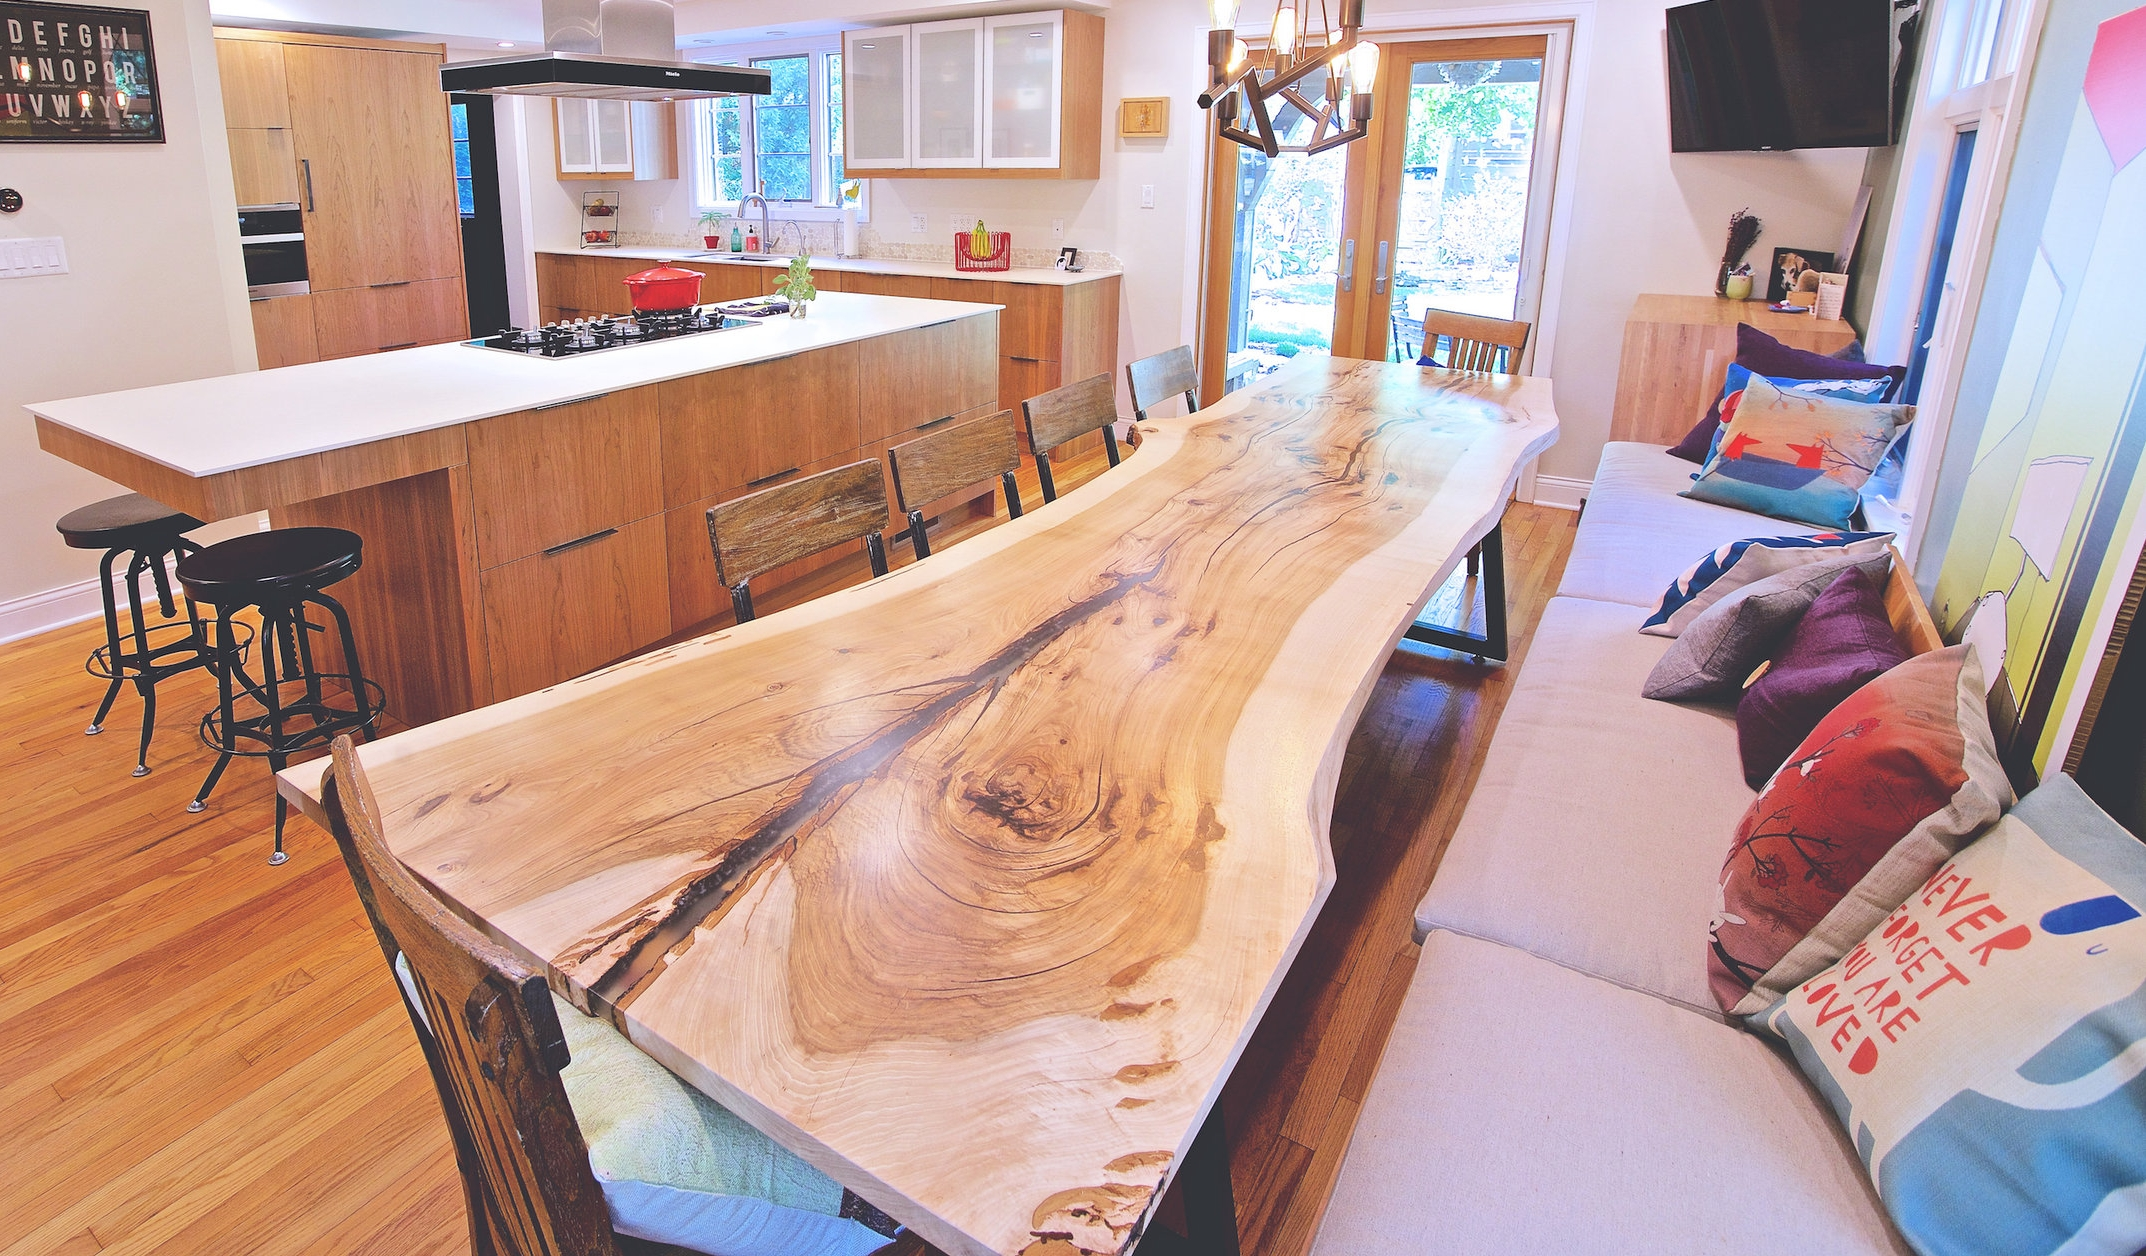 norden-at-home-custom-furniture-single-slab-dining-table.jpg